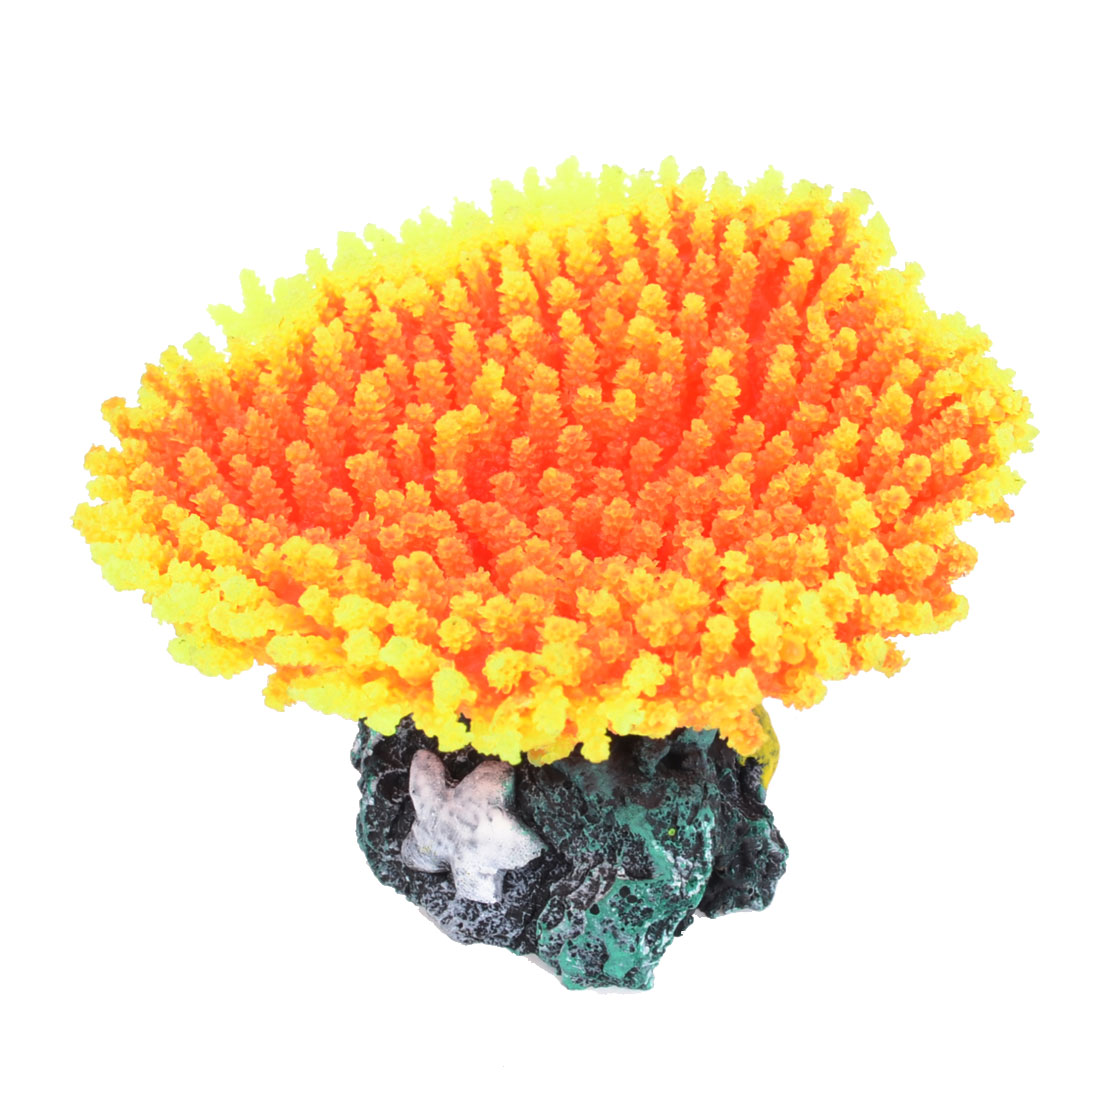 Fish Tank Orange Yellow Silicone Emulational Sea Anemone Coral Ornament 1.6""